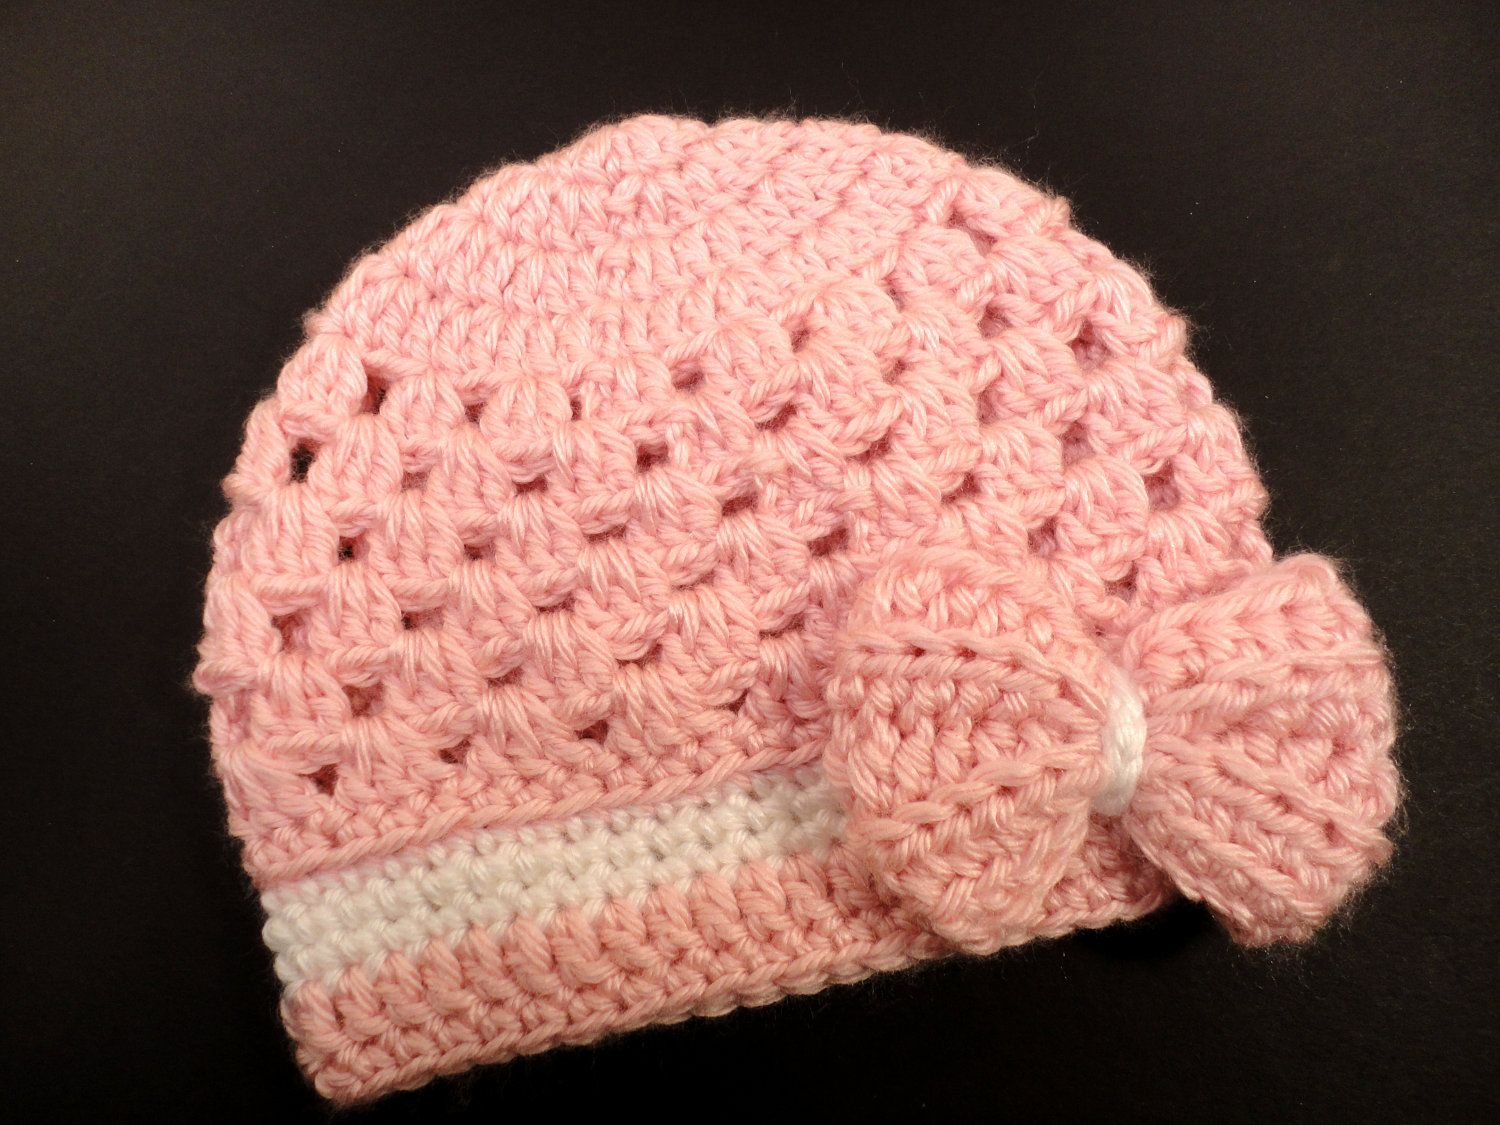 crocheting+for+baby | Crochet Hat Pattern for Baby Girl Newborn to 3 ...